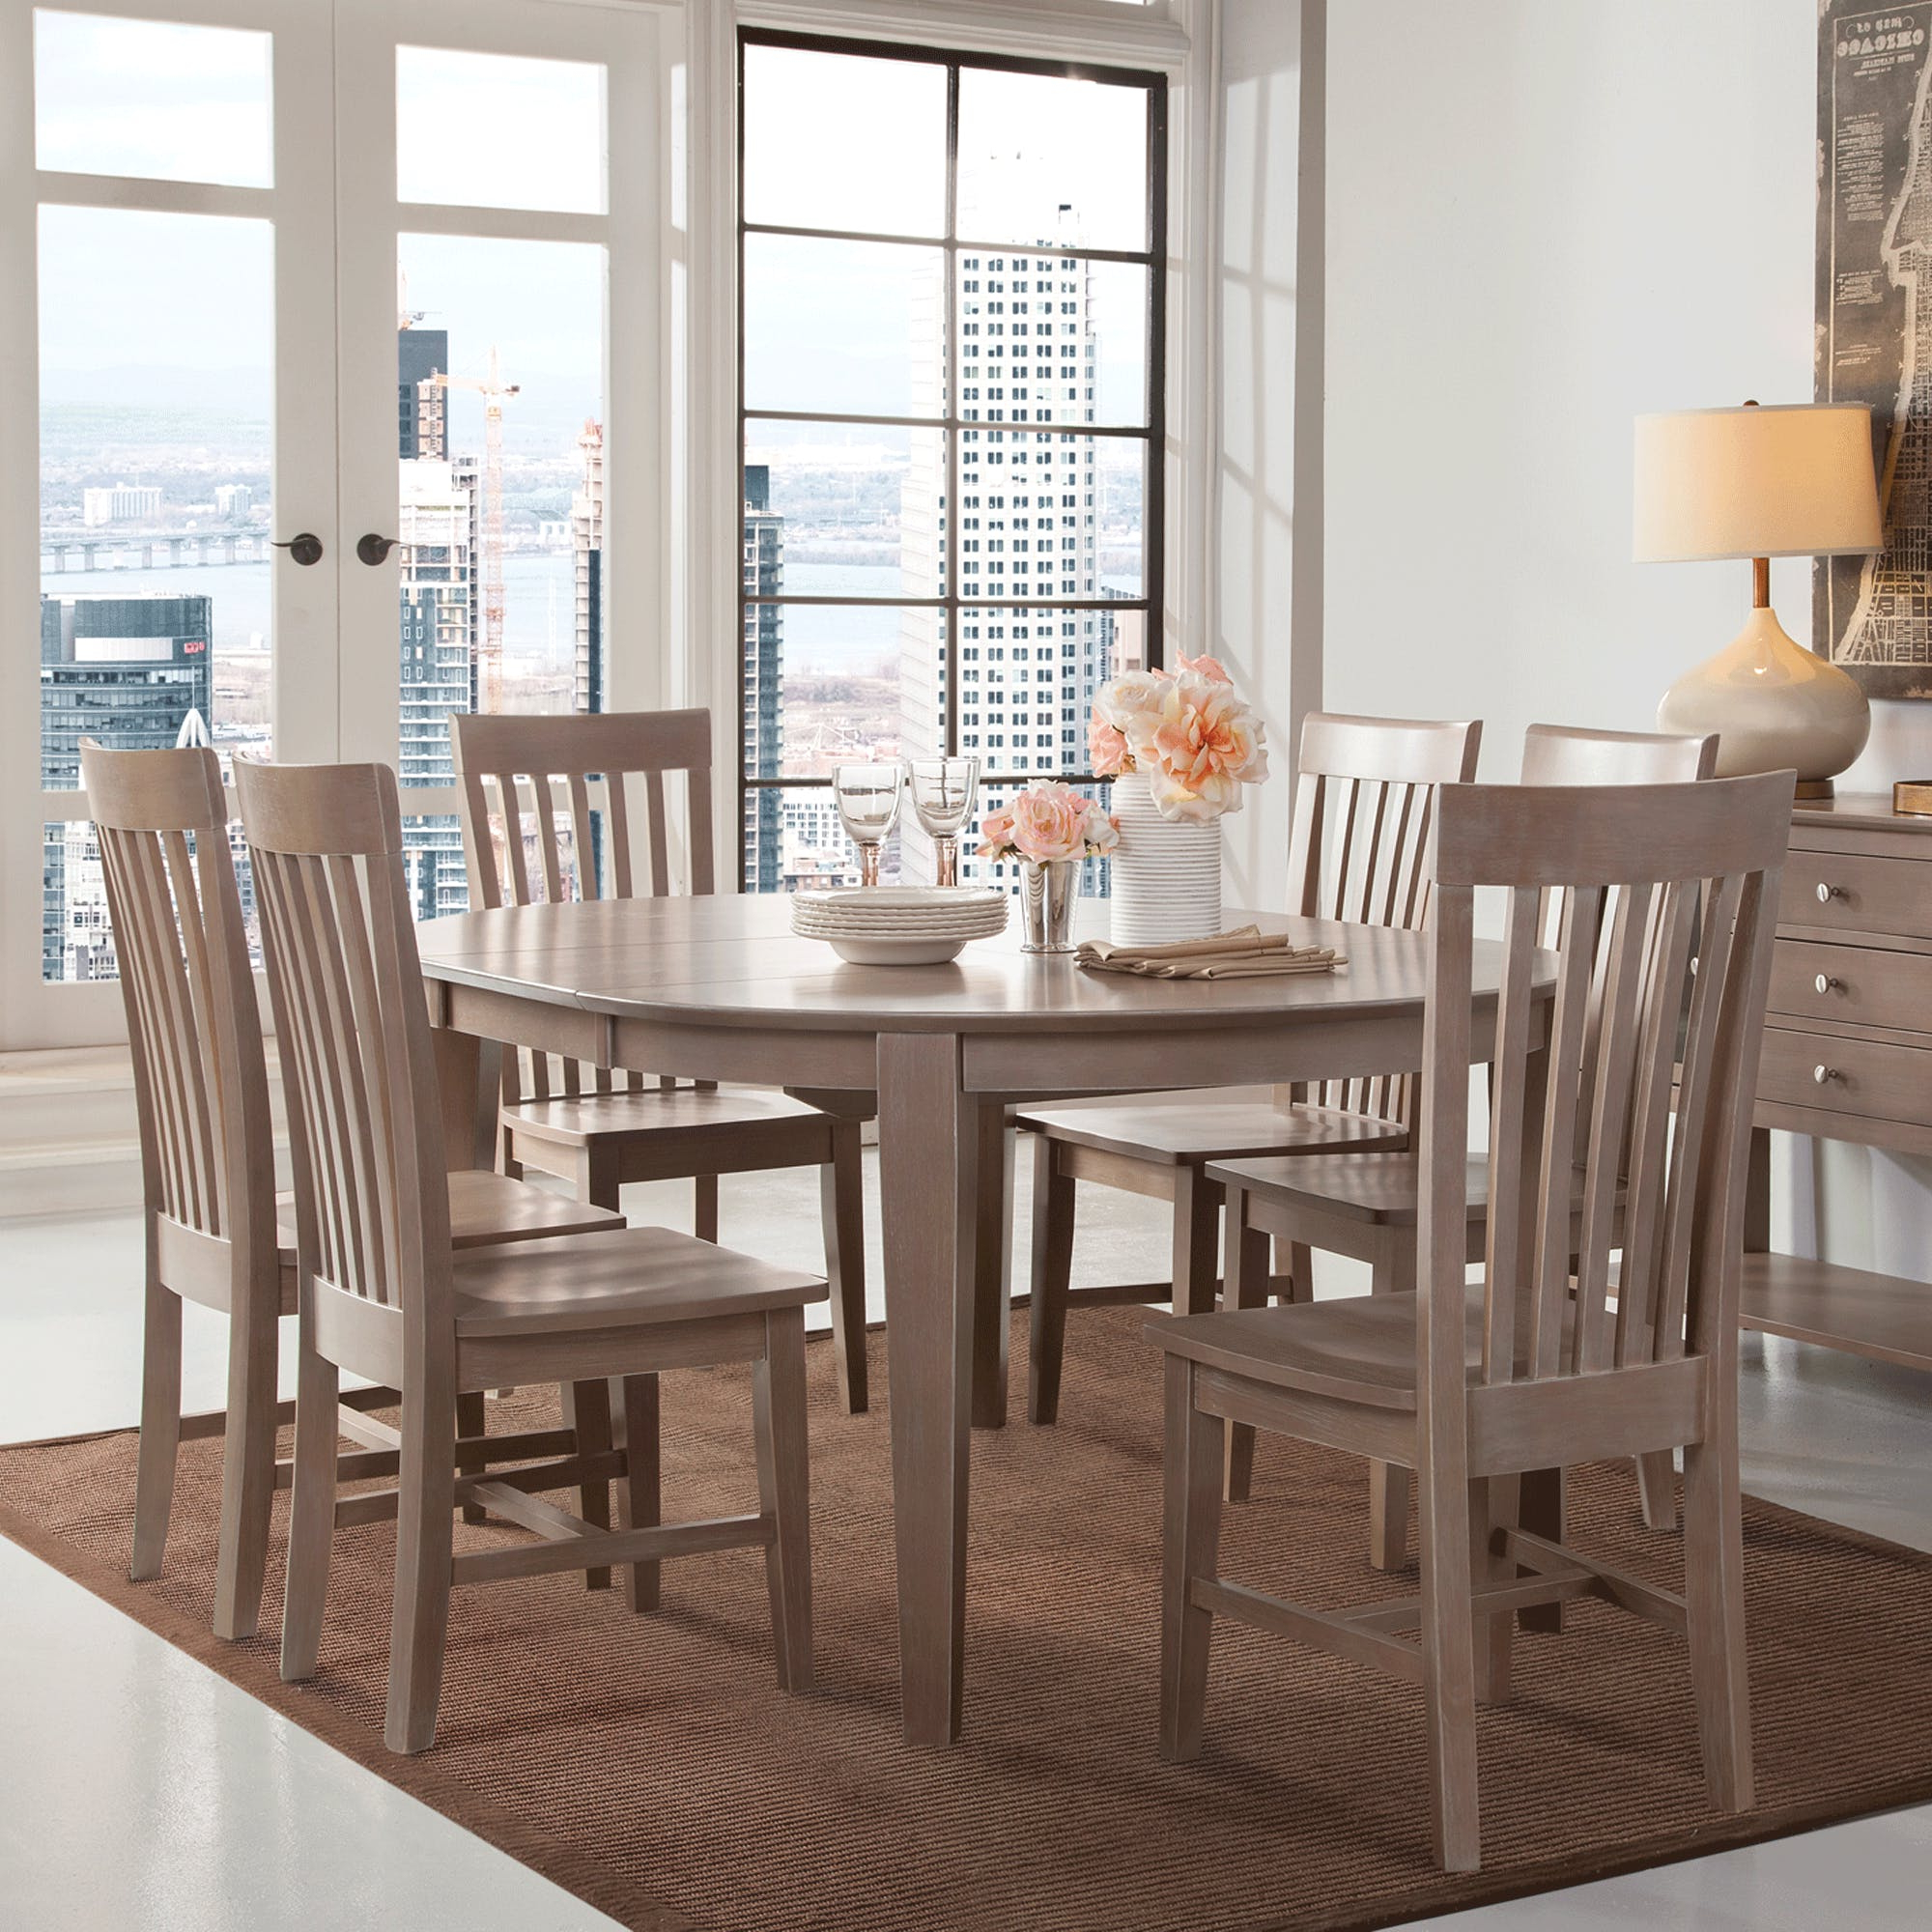 John 4 Piece Dining Sets Within Most Current Cosmopolitan Weathered Grey Dining Room 5 Piece Set – Oval Table (View 3 of 25)